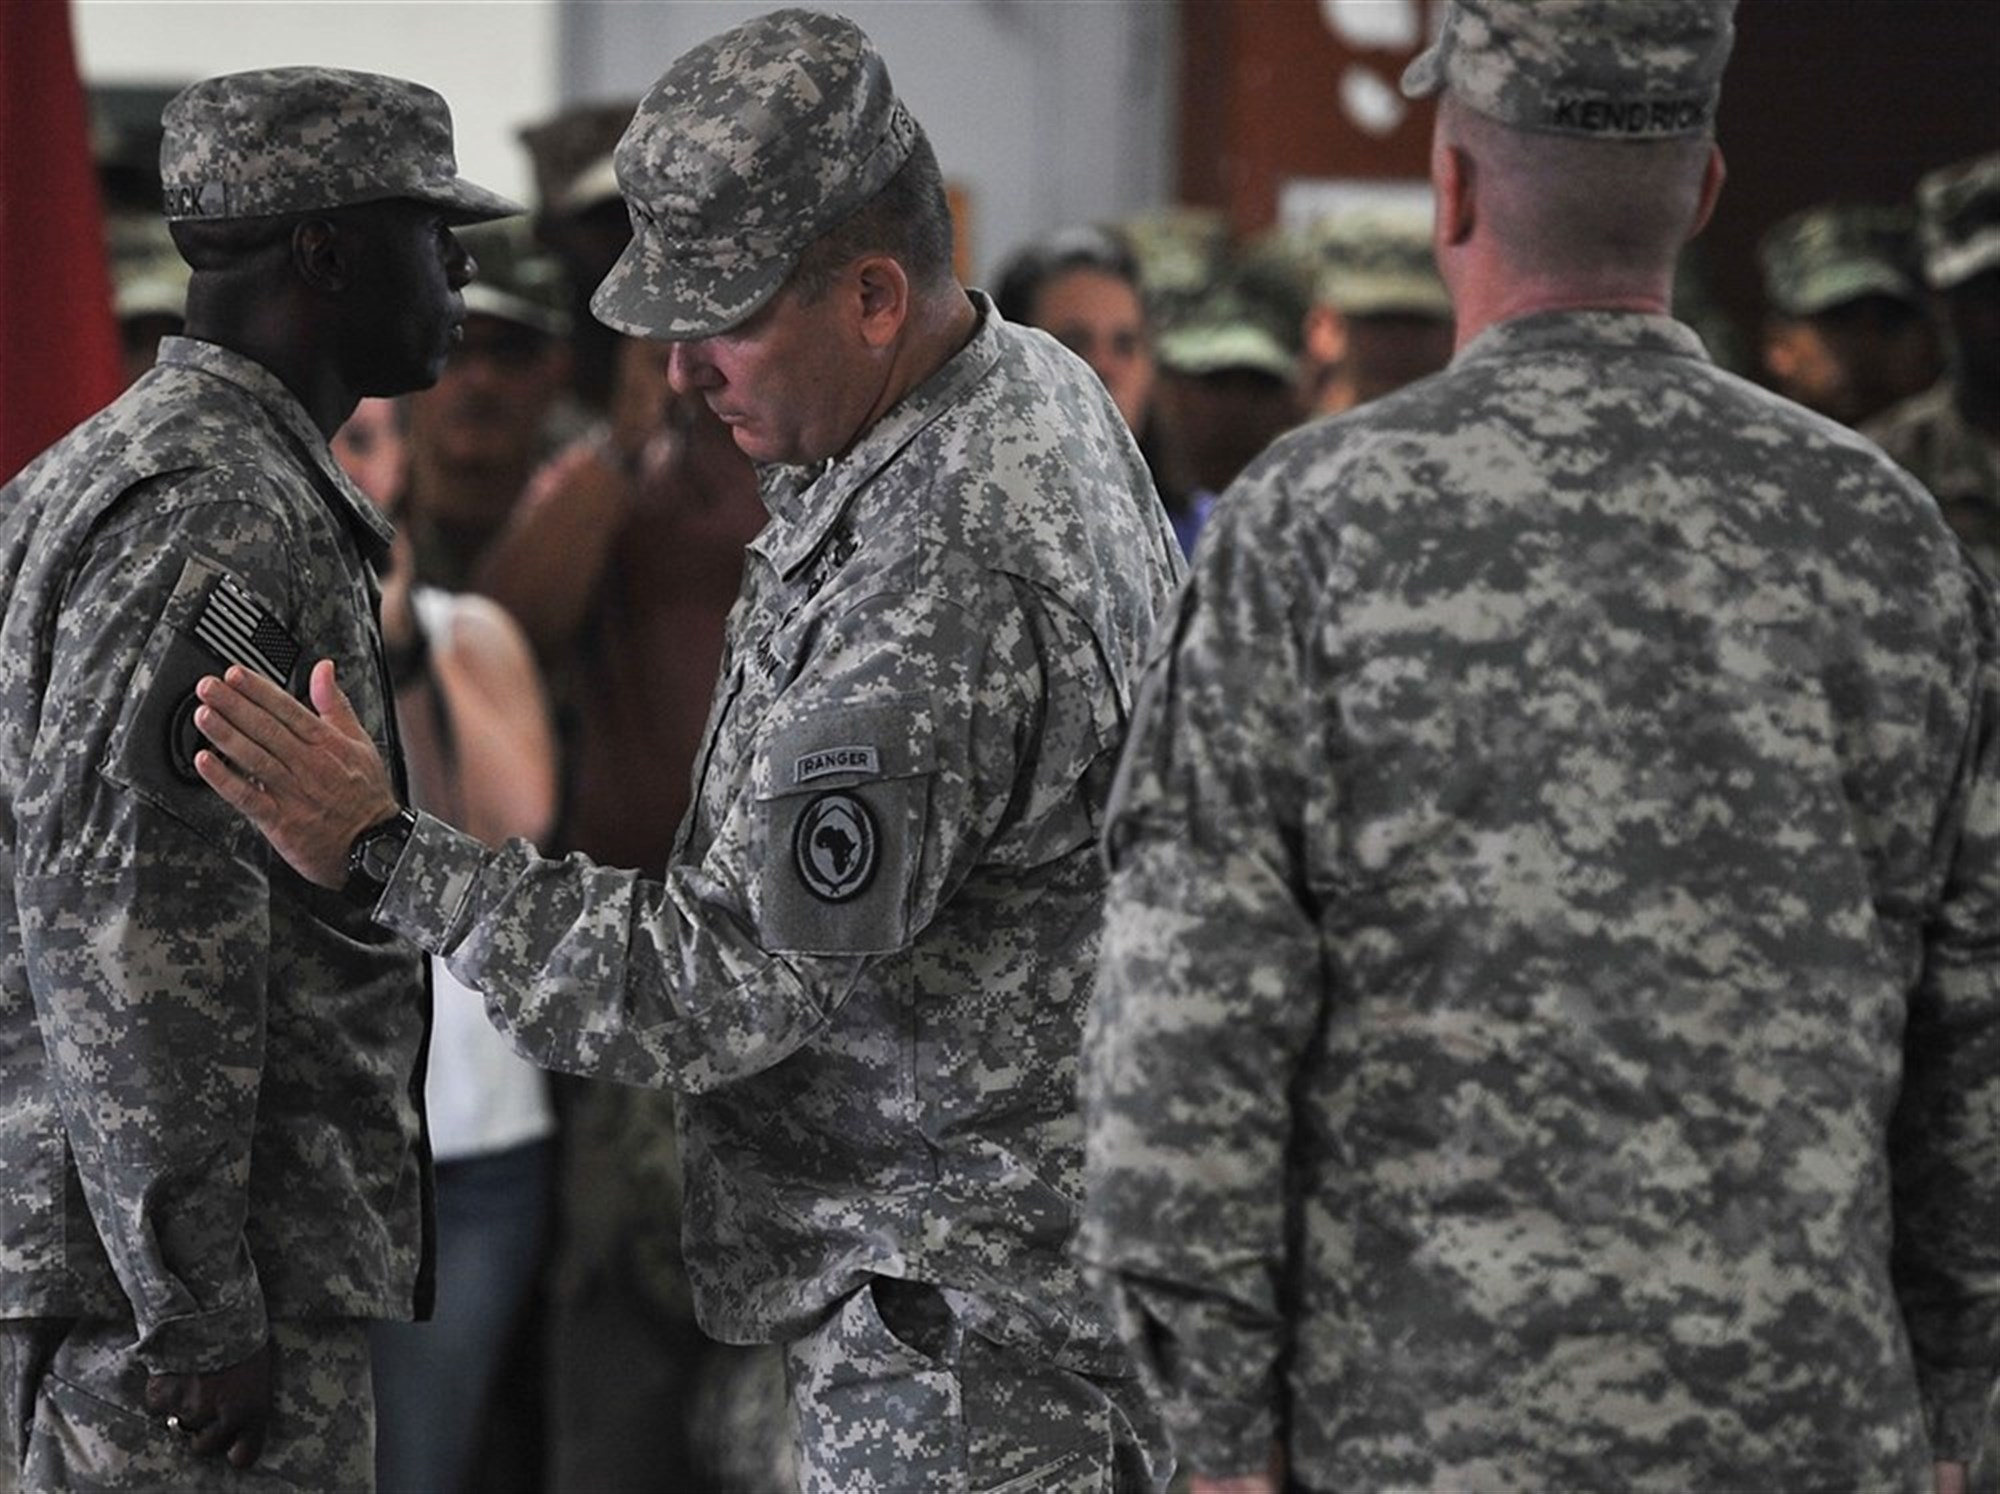 U.S. Maj. Gen. Mark Stammer, Combined Joint Task Force-Horn of Africa commanding general, presents Command Sgt. Maj. Butler Kendrick Jr. with the U.S. Africa Command combat patch during a ceremony at Camp Lemonnier, Djibouti, Nov. 28, 2015. The soldiers assigned to CJTF-HOA are now authorized to wear the U.S. Africa Command patch for the duration of their careers. (U.S. Air Force photo by Tech. Sgt. Dan DeCook)